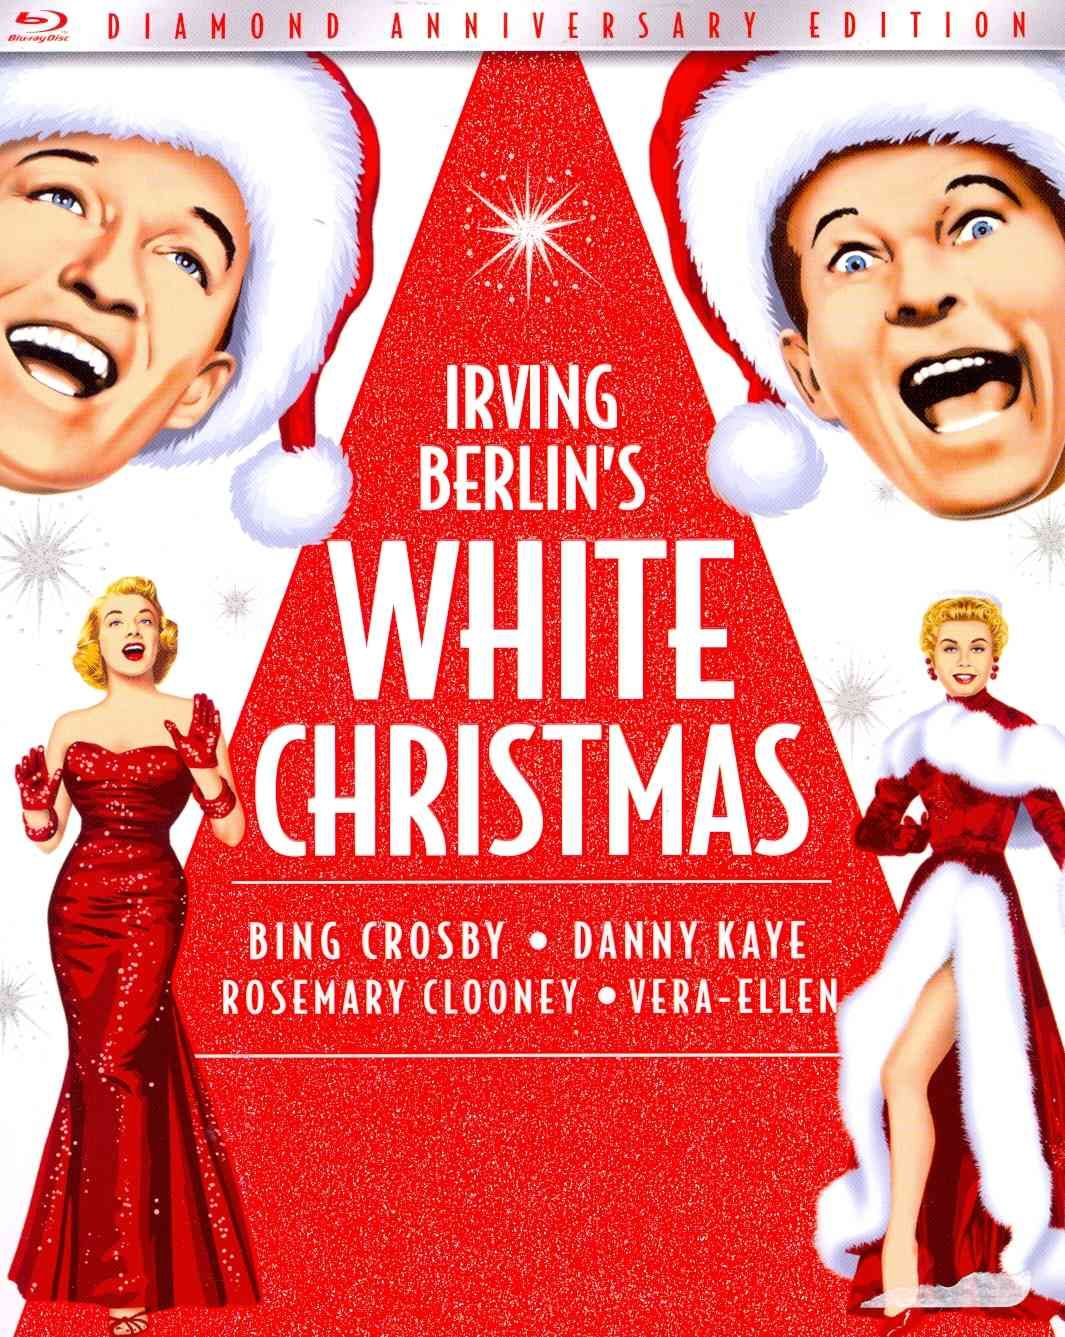 From the early 1960s to the mid1970s, Bing Crosby's